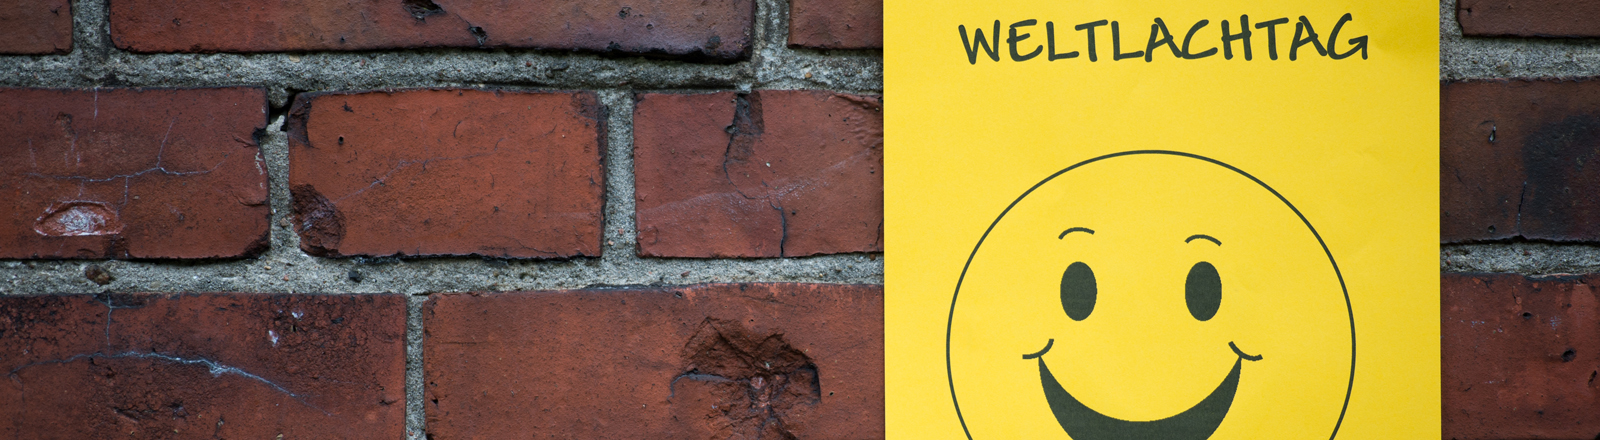 Weltlachtag-Smiley auf Hauswand. Copyright: dpa